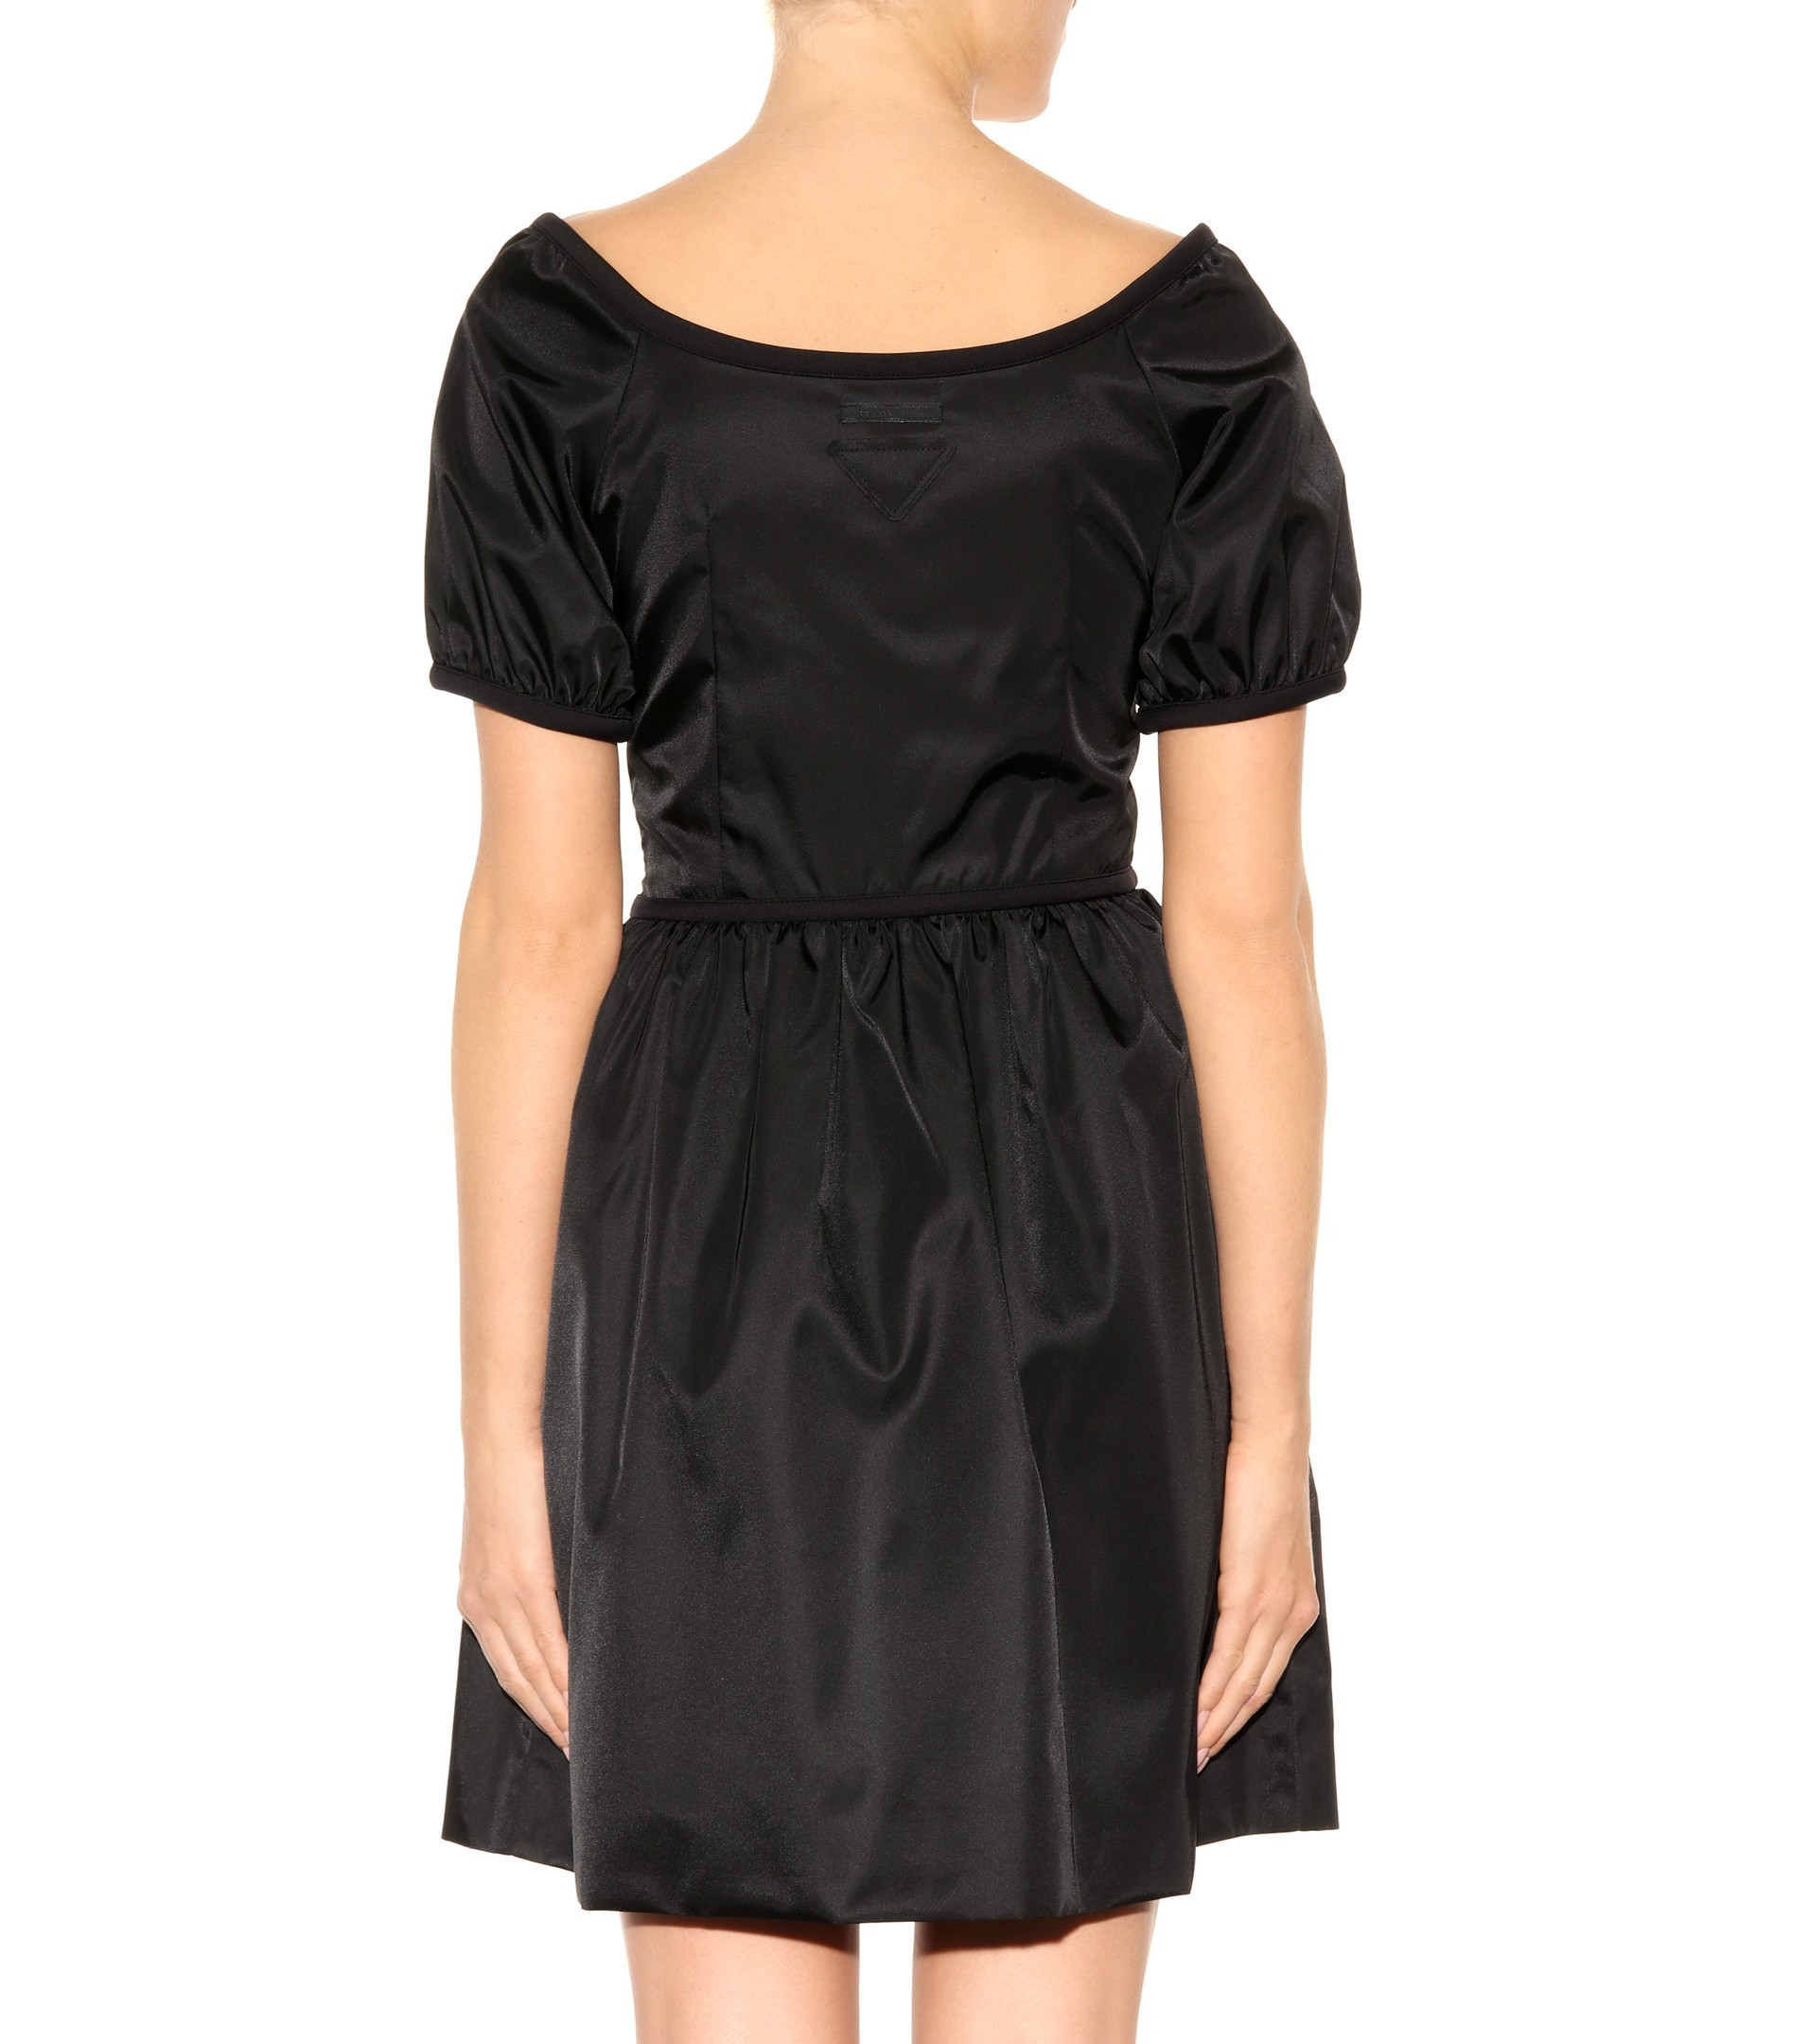 PR355 NYLON GABARDINE FLARE DRESS